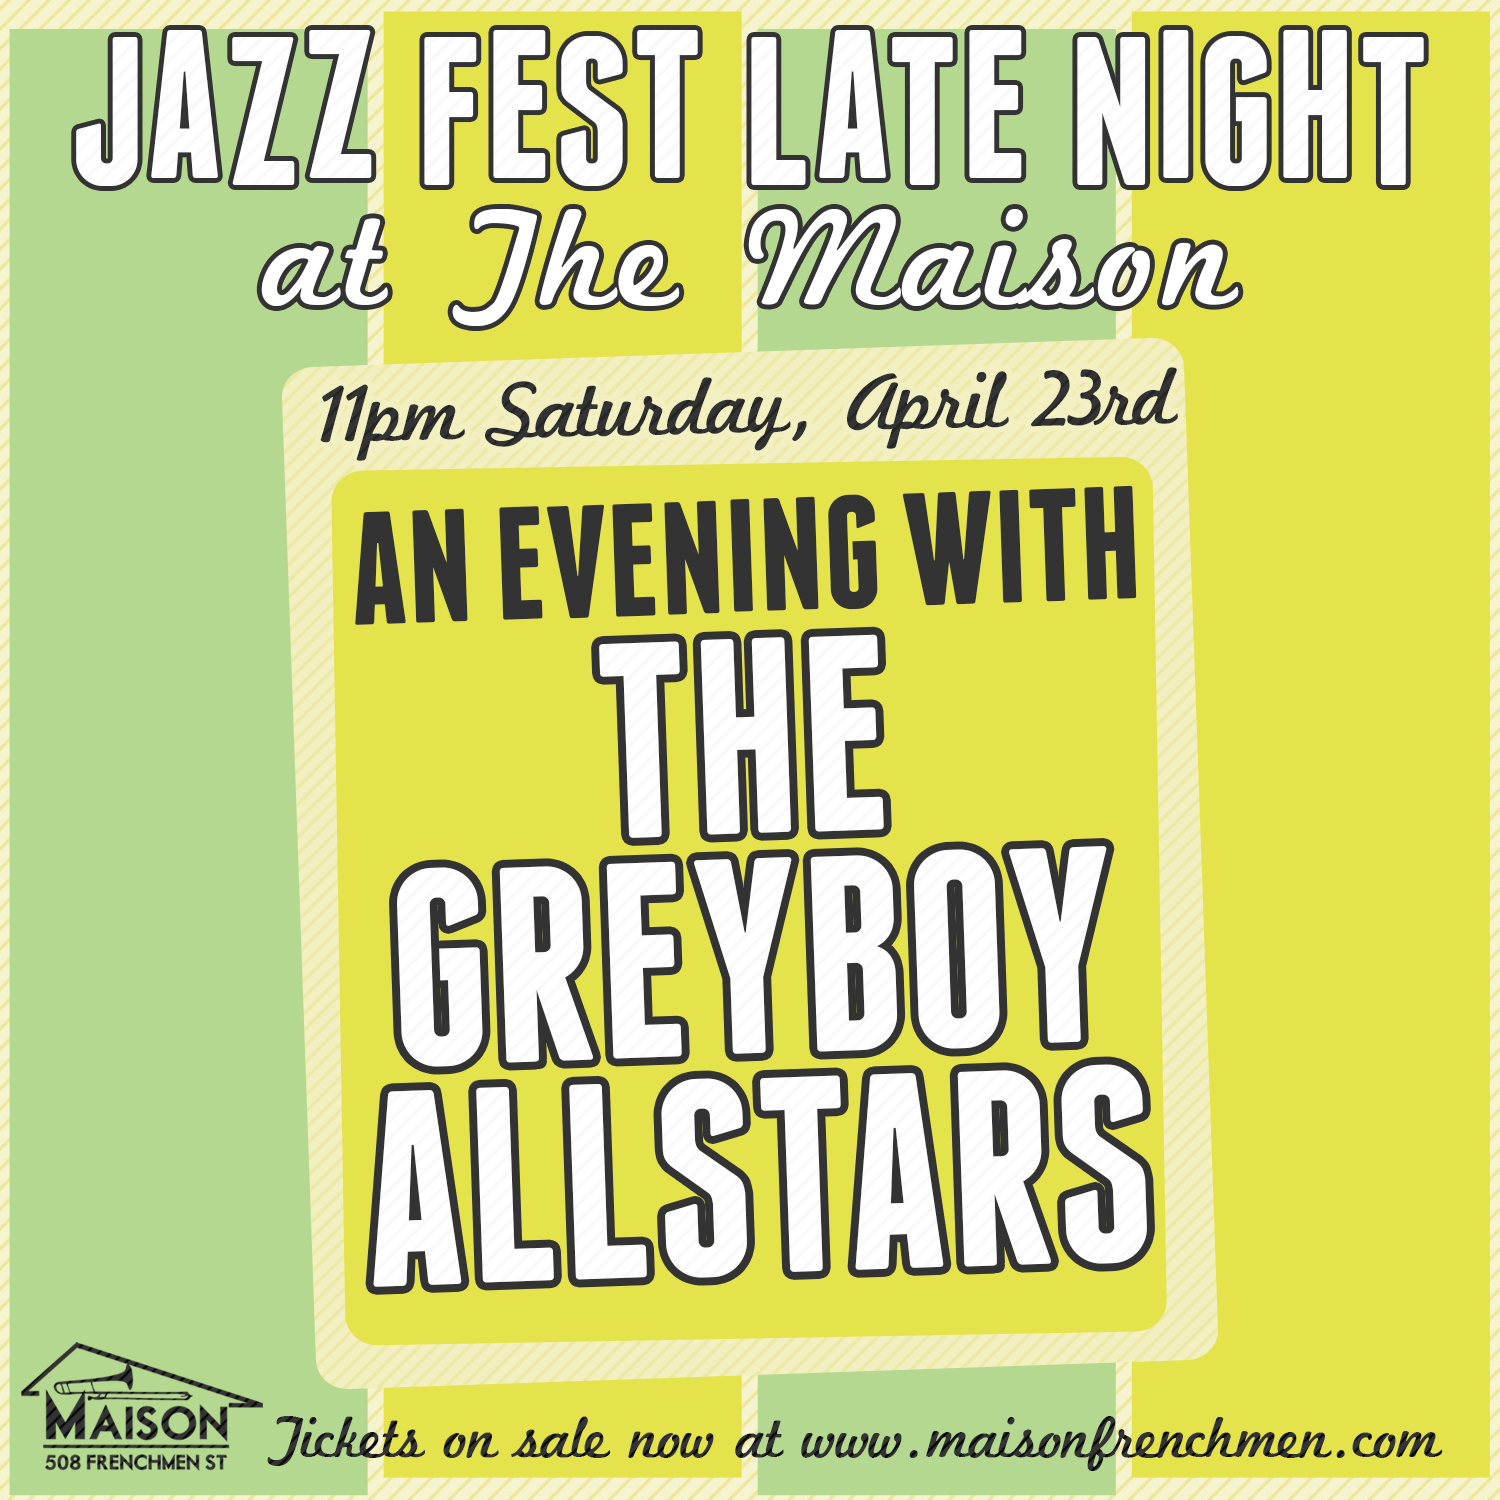 New Orleans Jazz Fest 2016 Late Night with The Greyboy Allstars at The Maison on Frenchmen Street